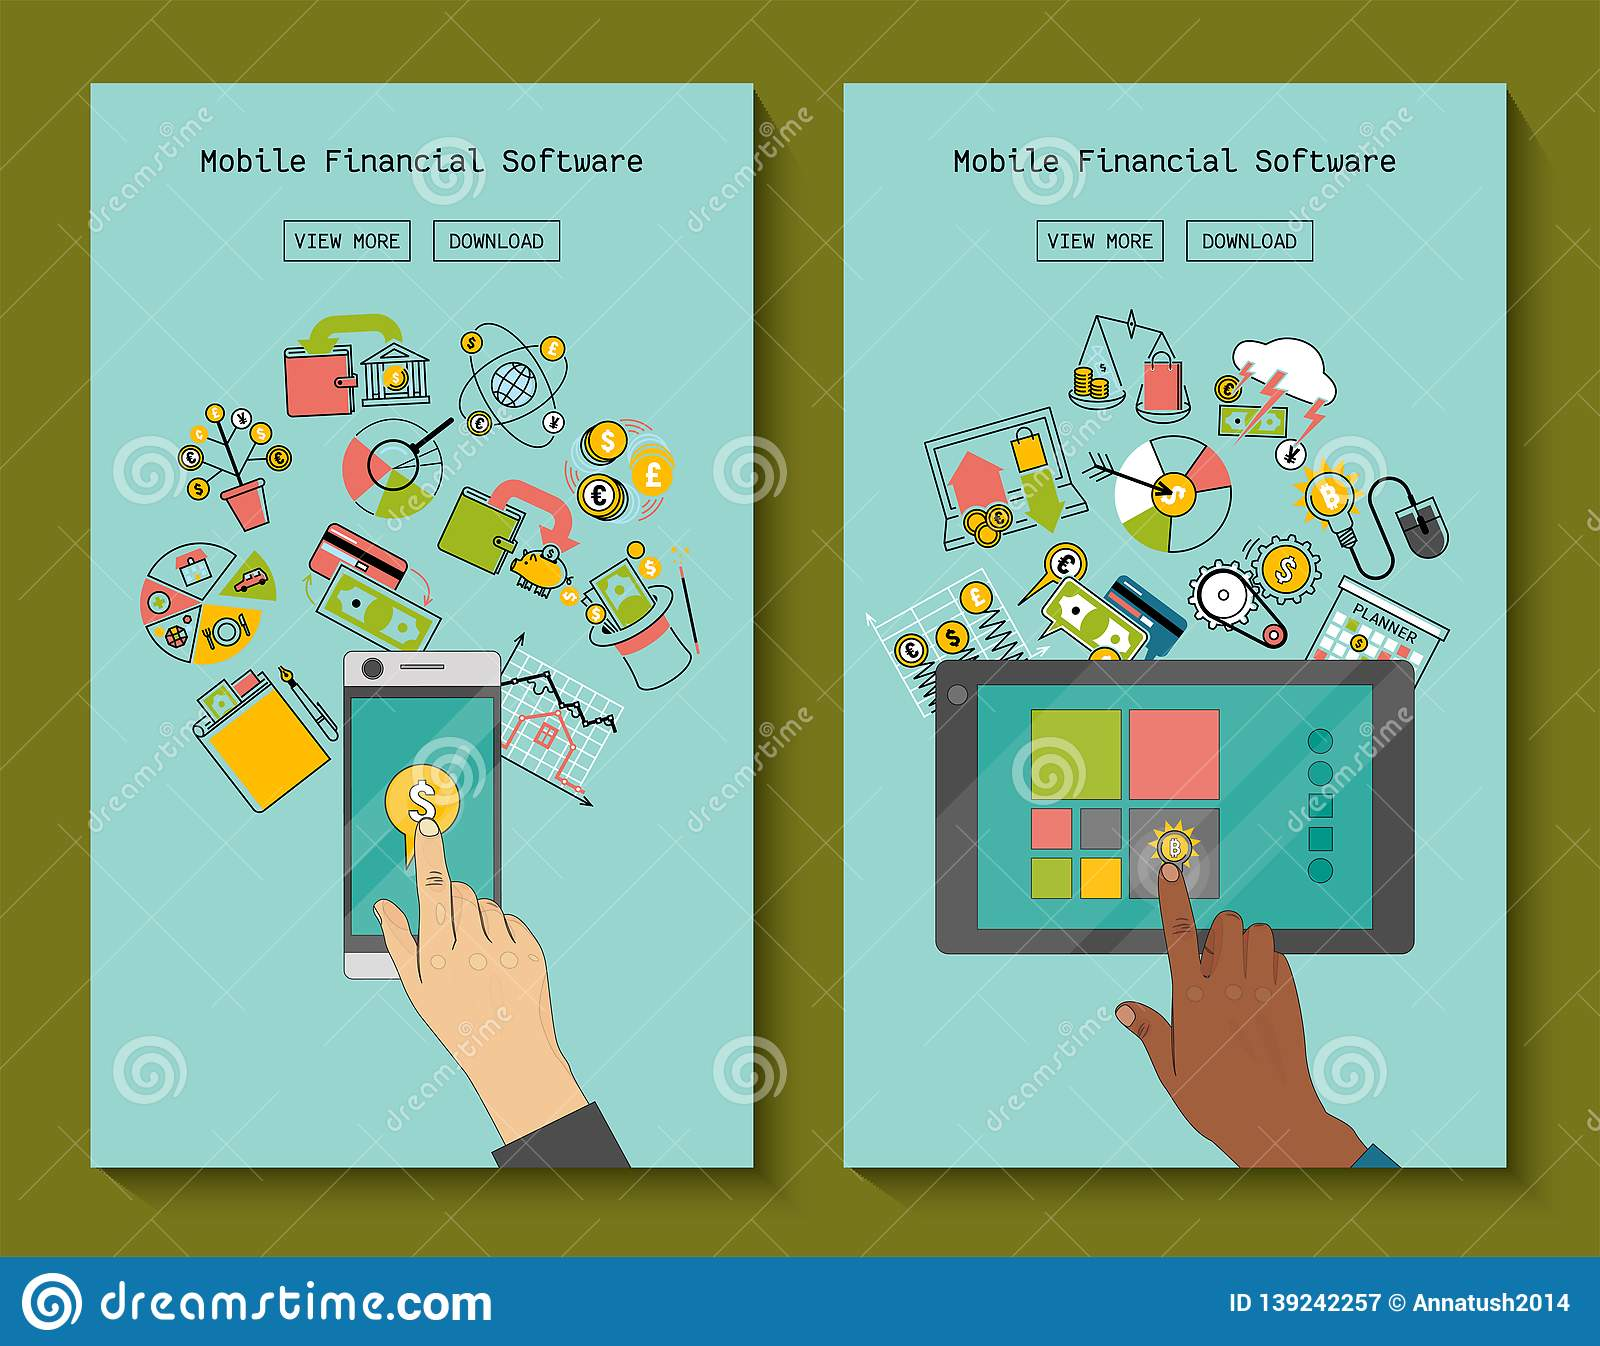 Mobile financial software for phone and tablet banners vector illustration. Risk management. Corporate finance